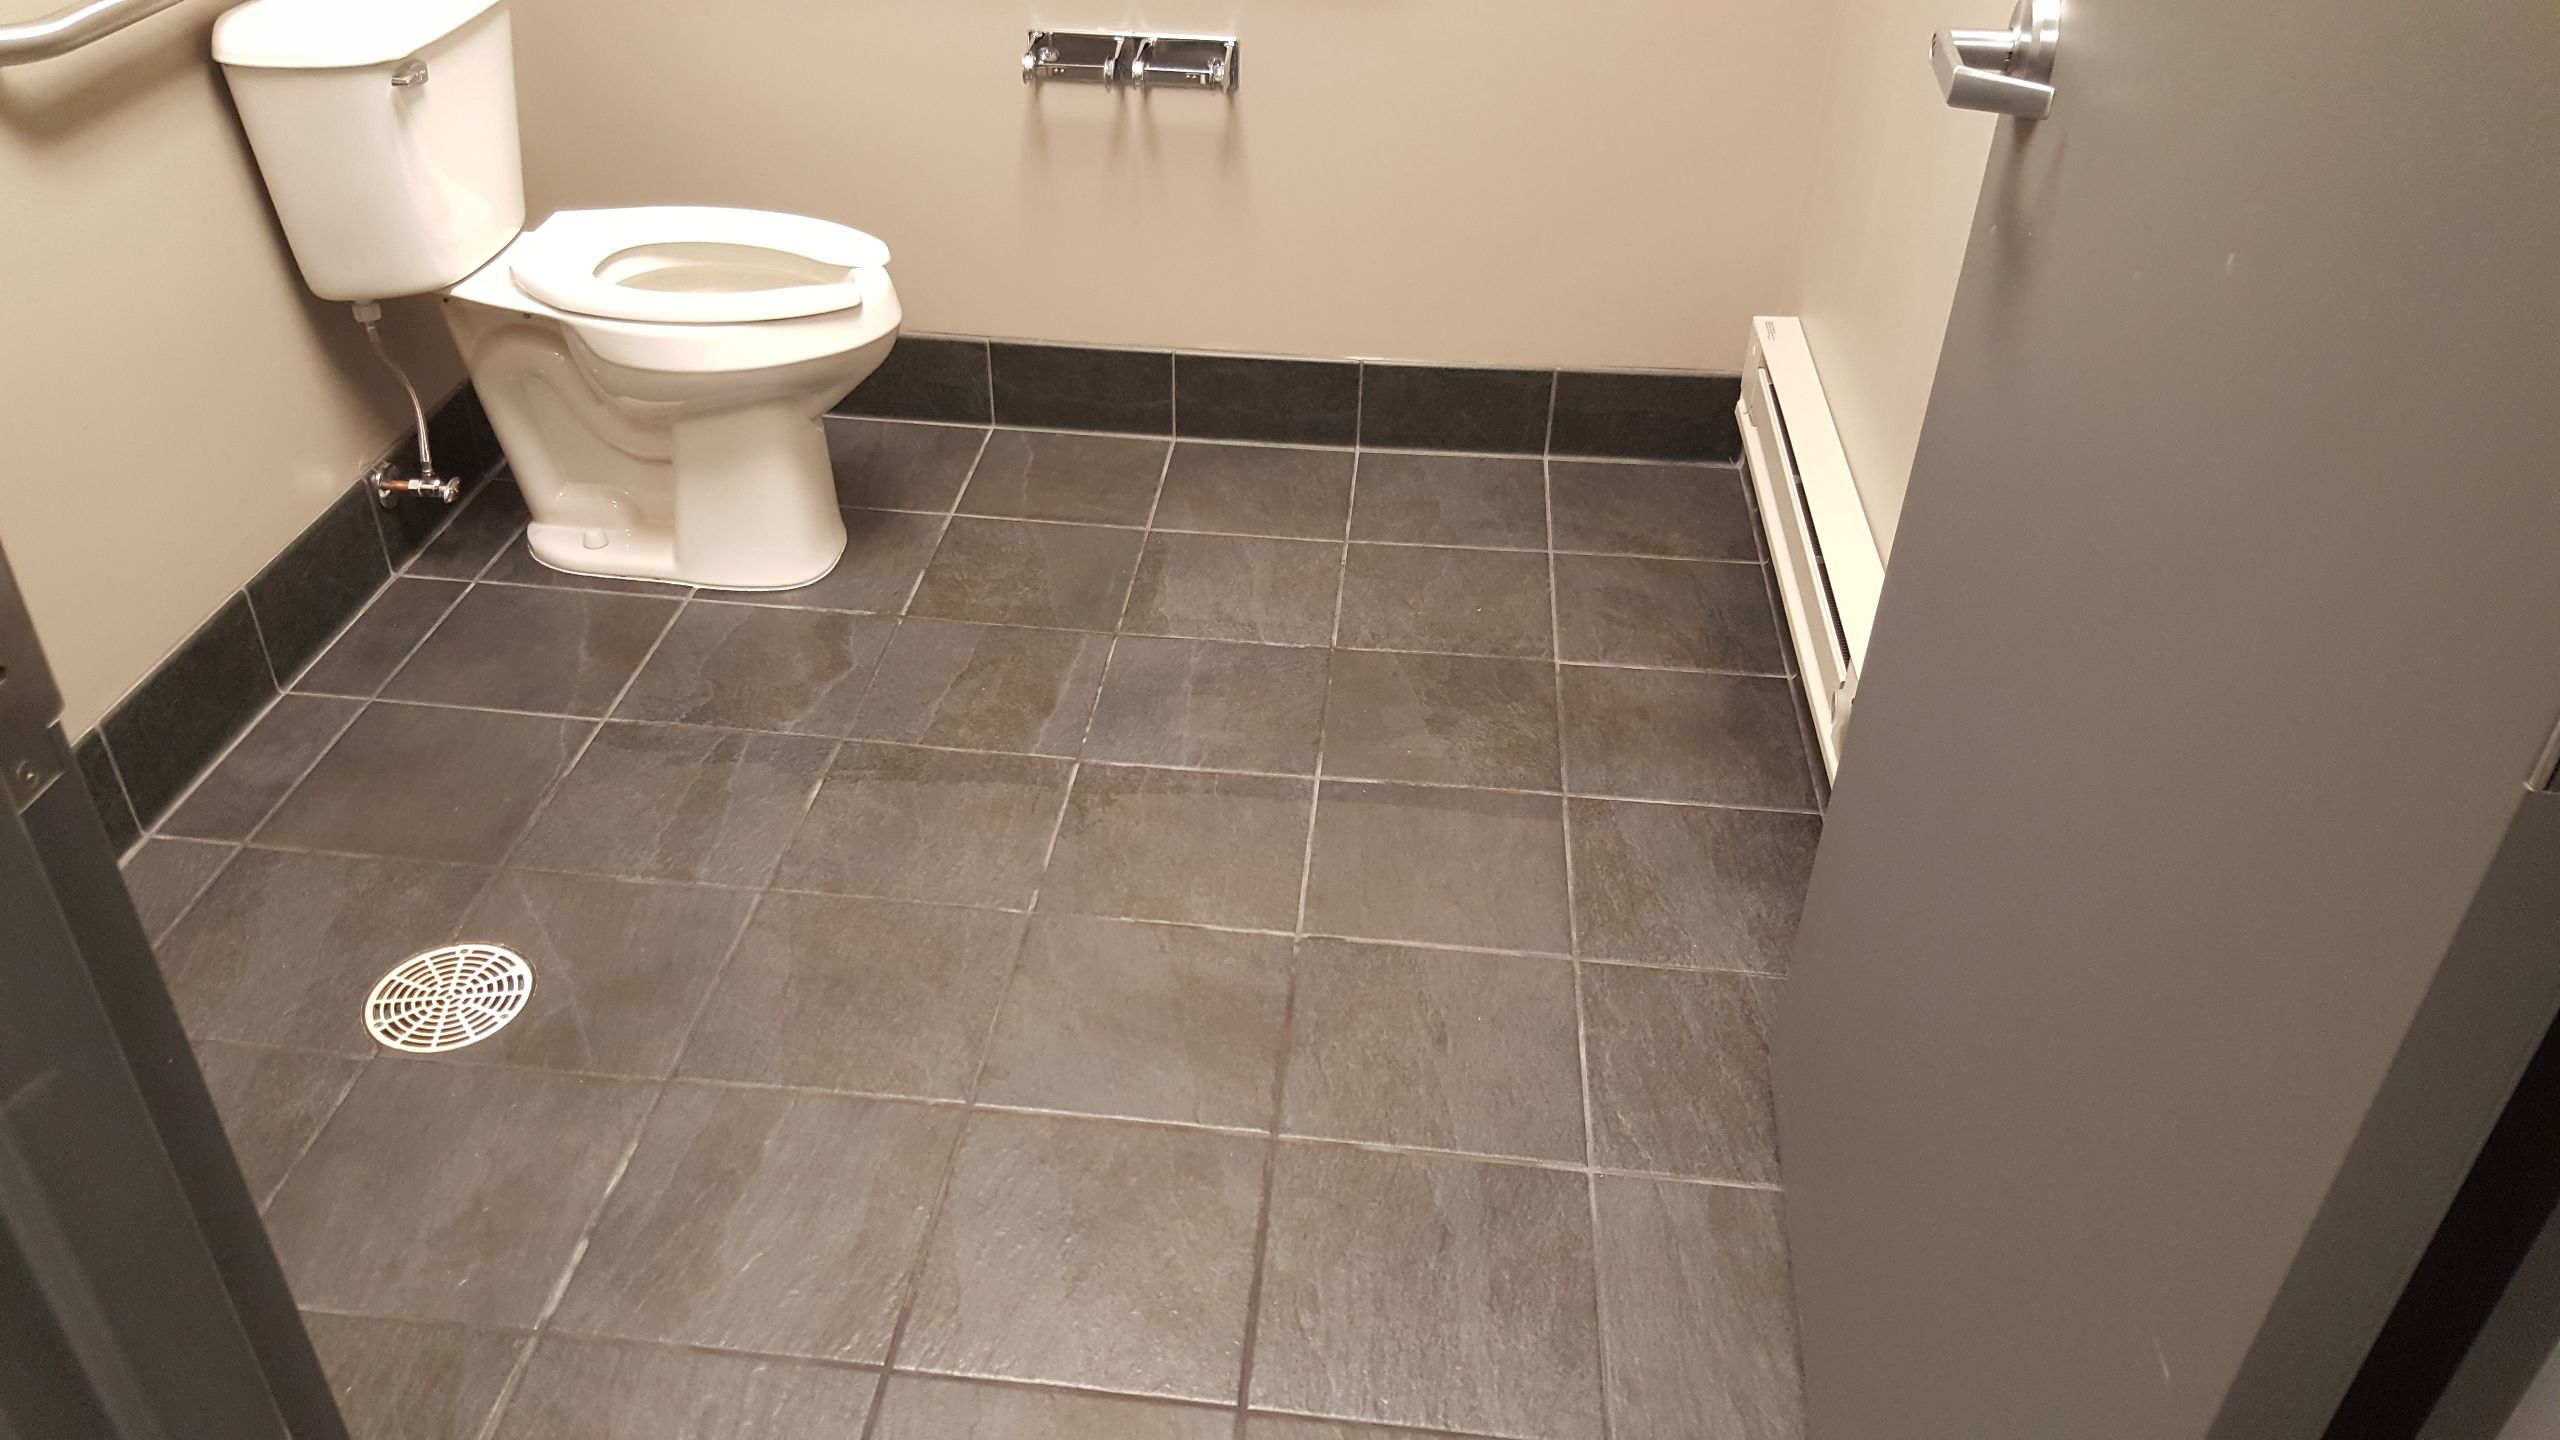 Tile Cleaning in Novi Michigan